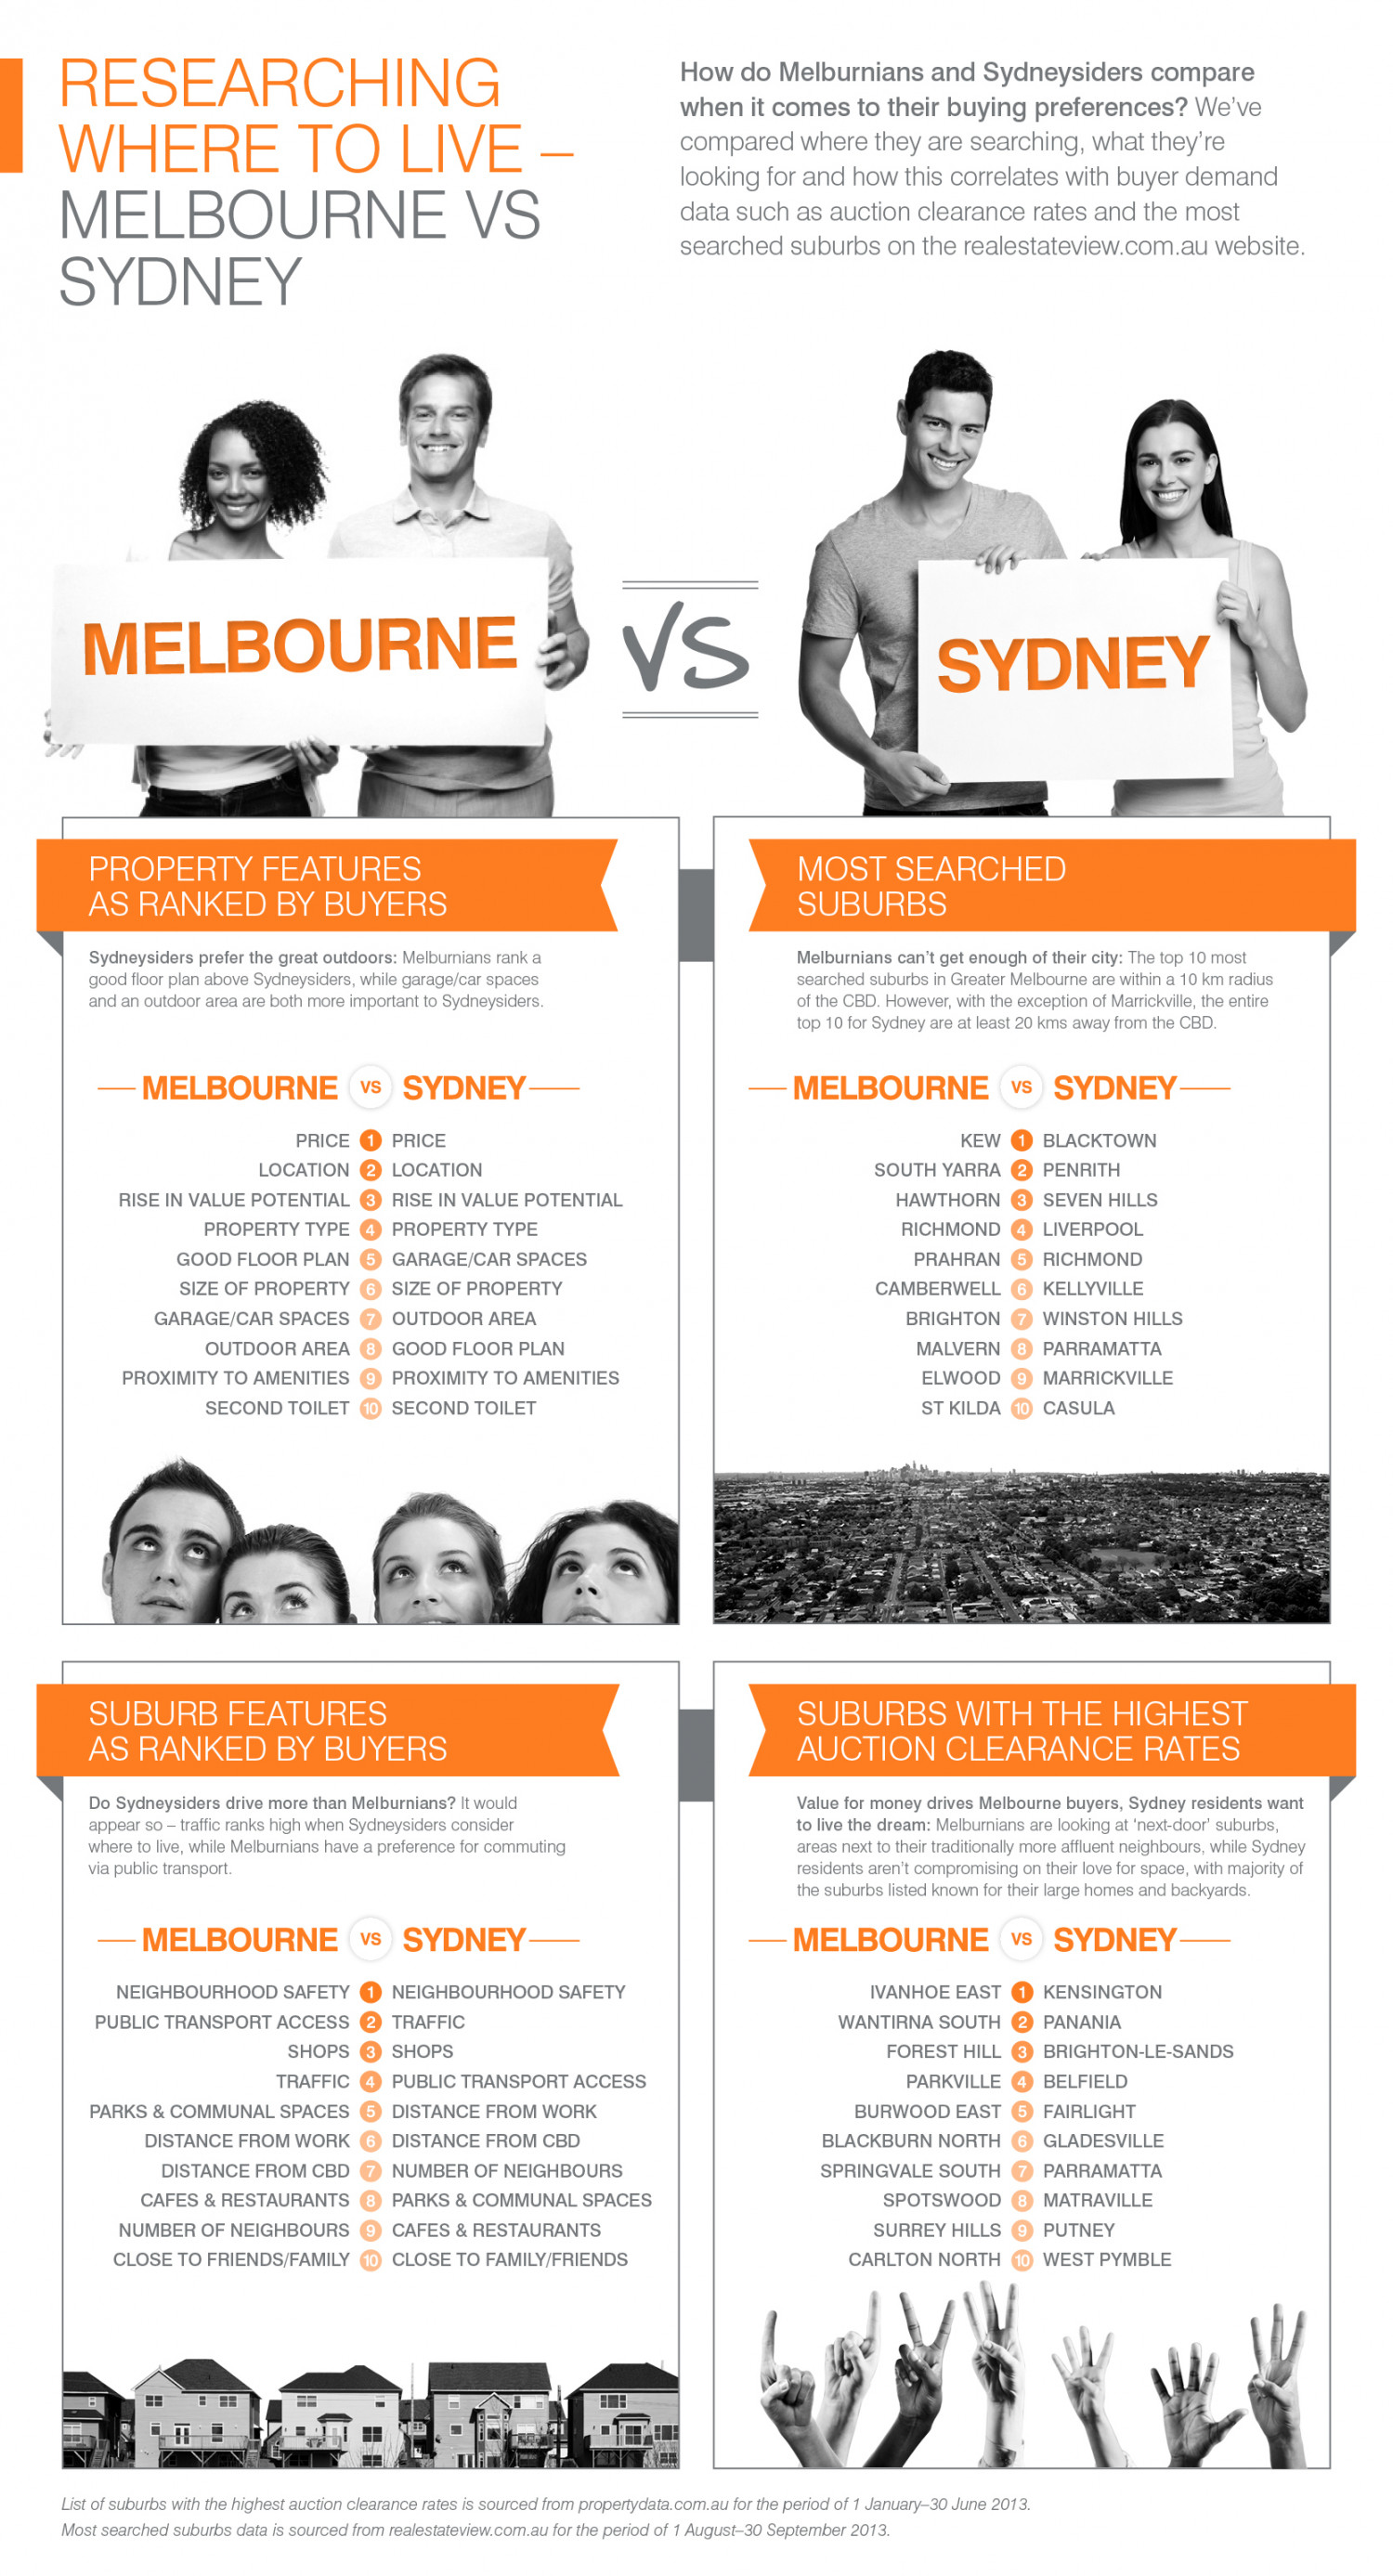 Where to Live - Melbourne vs. Sydney Infographic